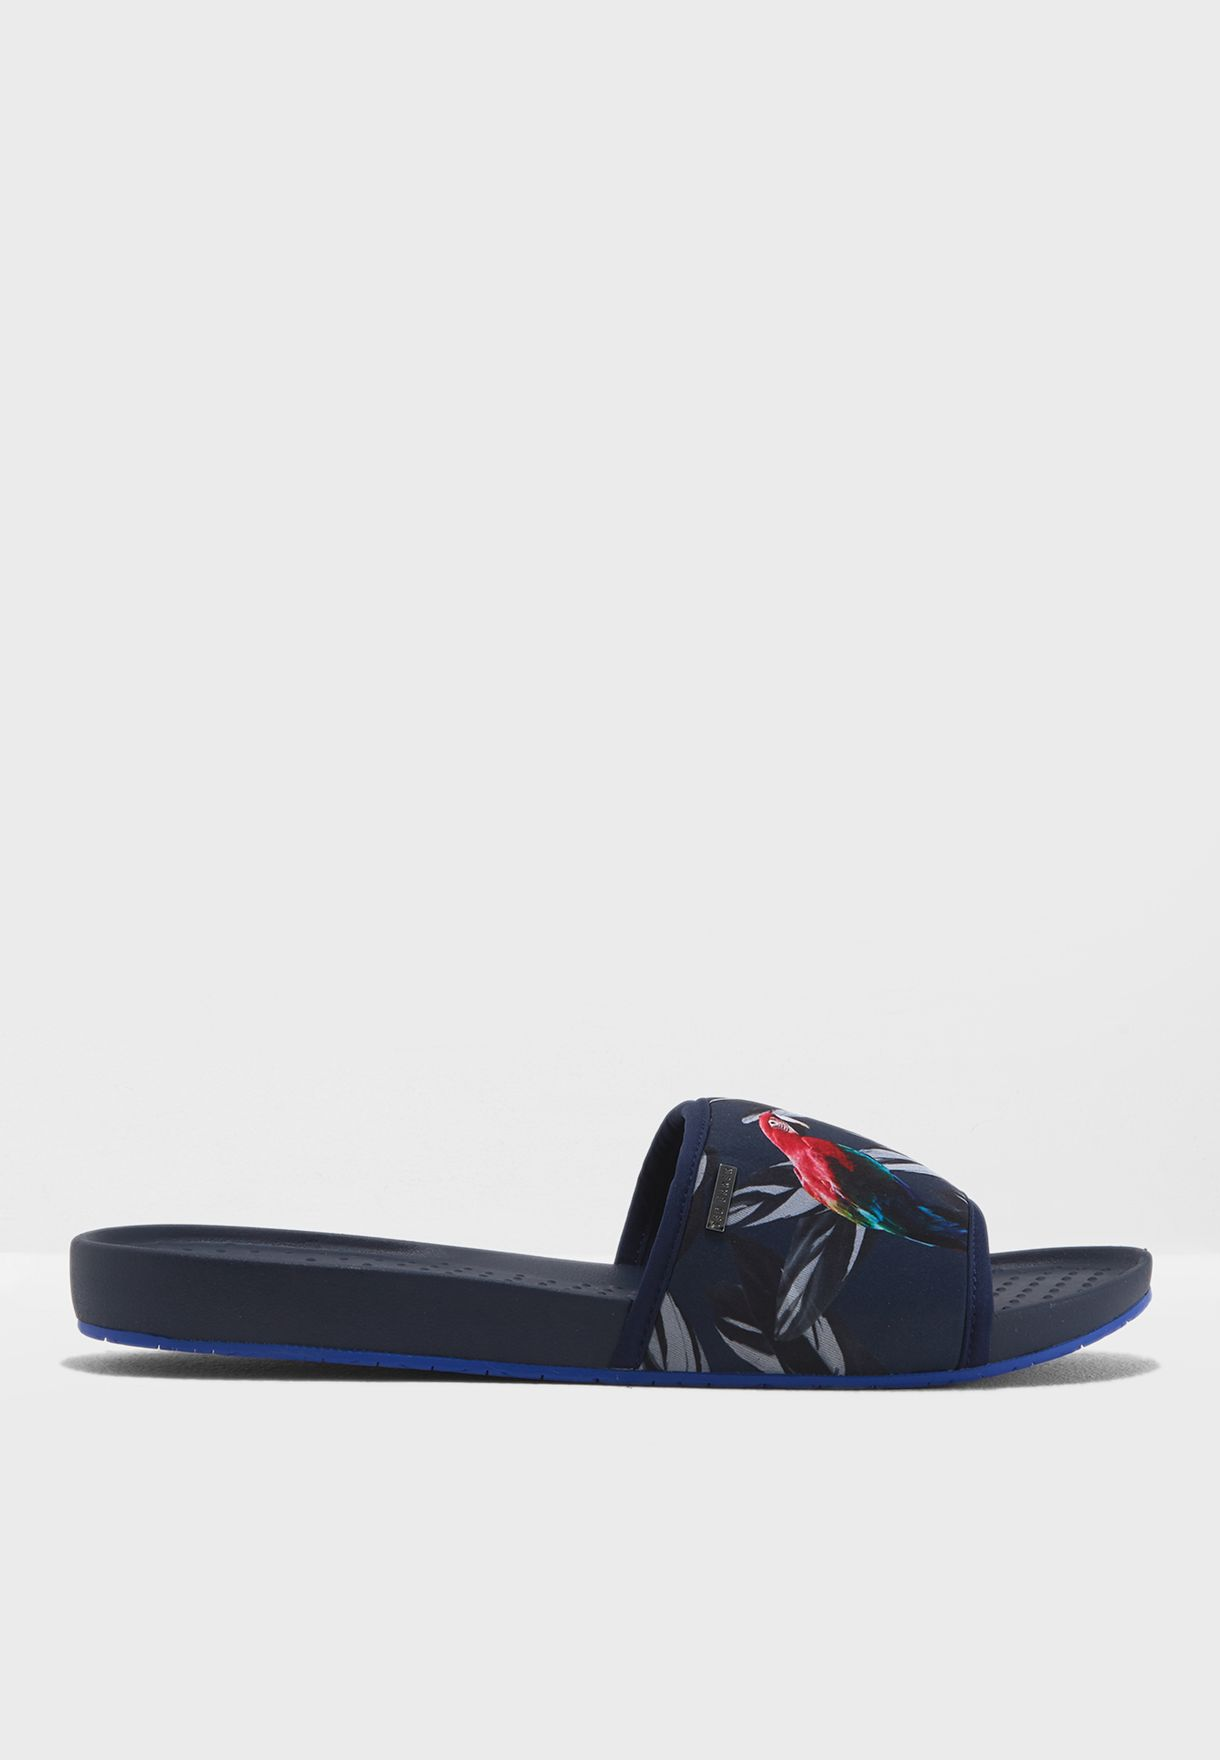 c636d779a Shop Ted baker blue Sauldi 2 Flipflops 917370 for Men in UAE ...